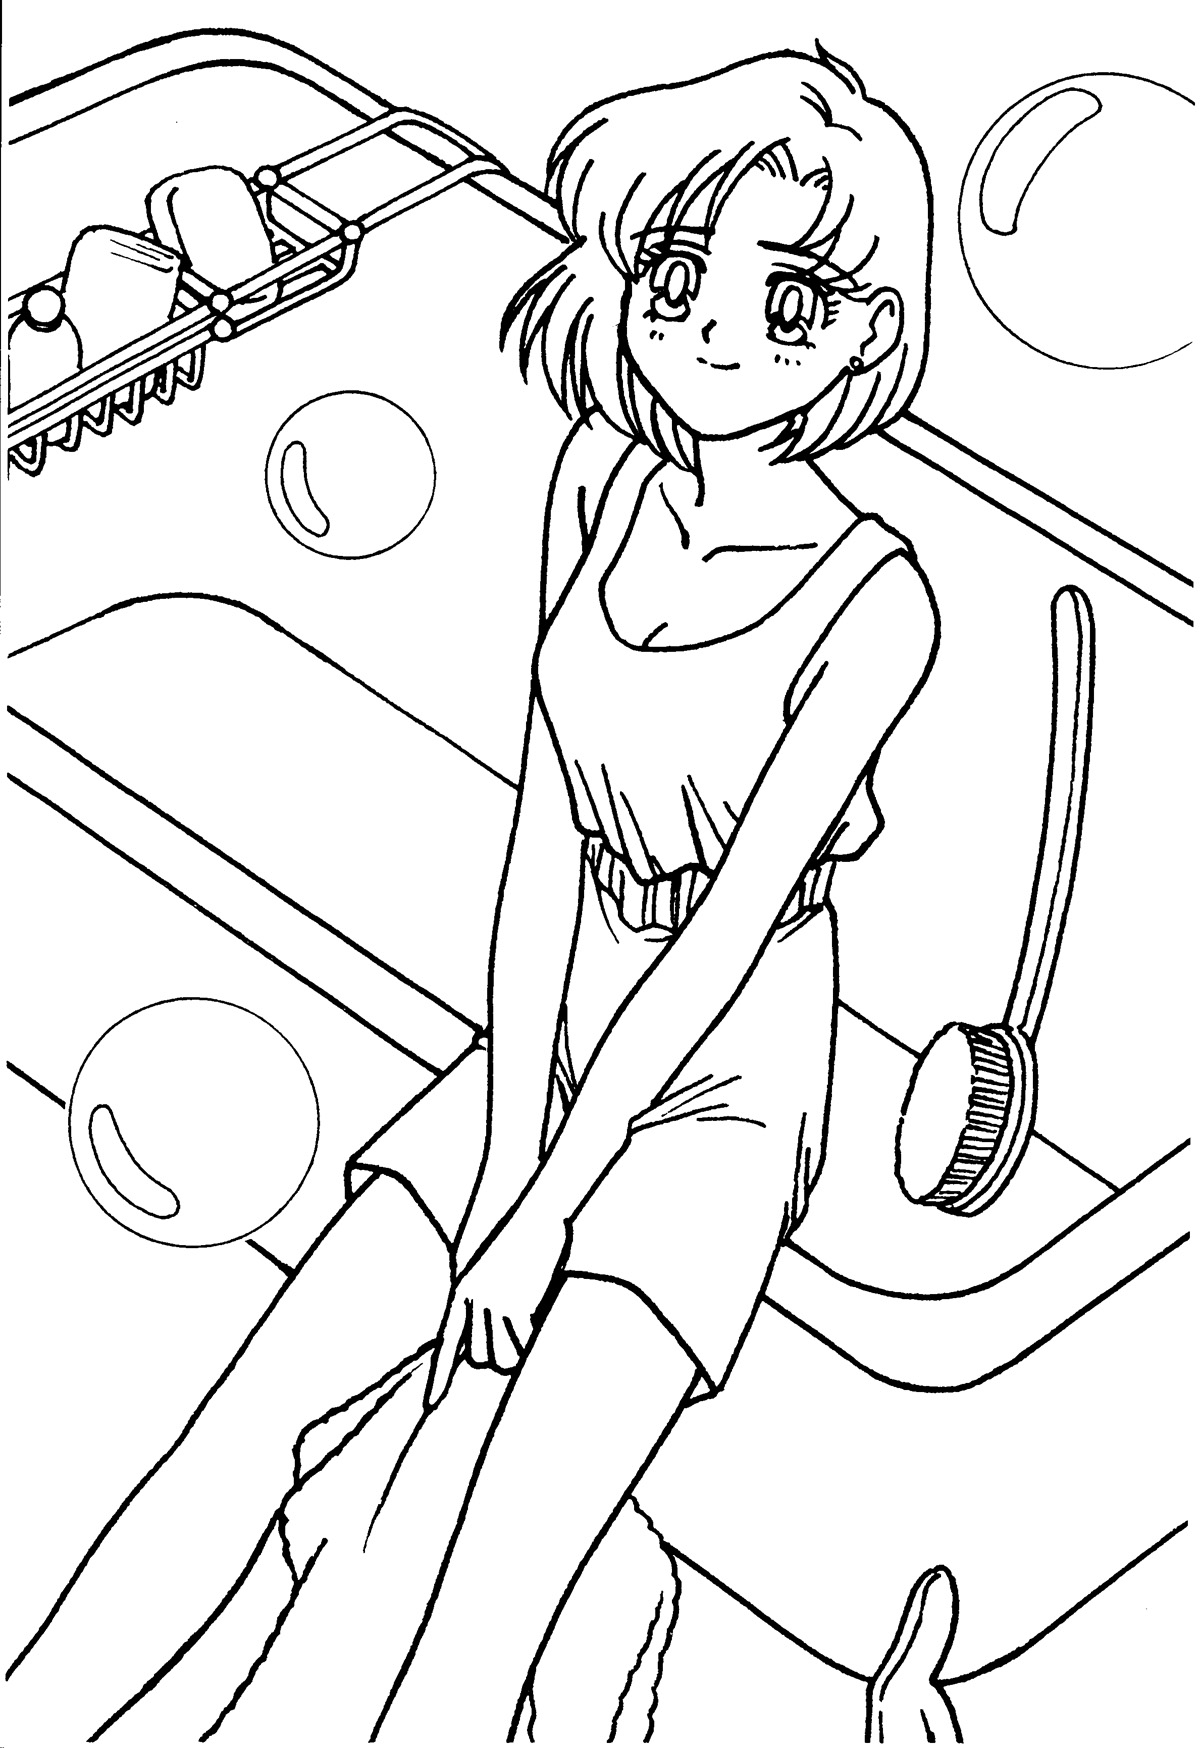 usc coloring pages - photo#11